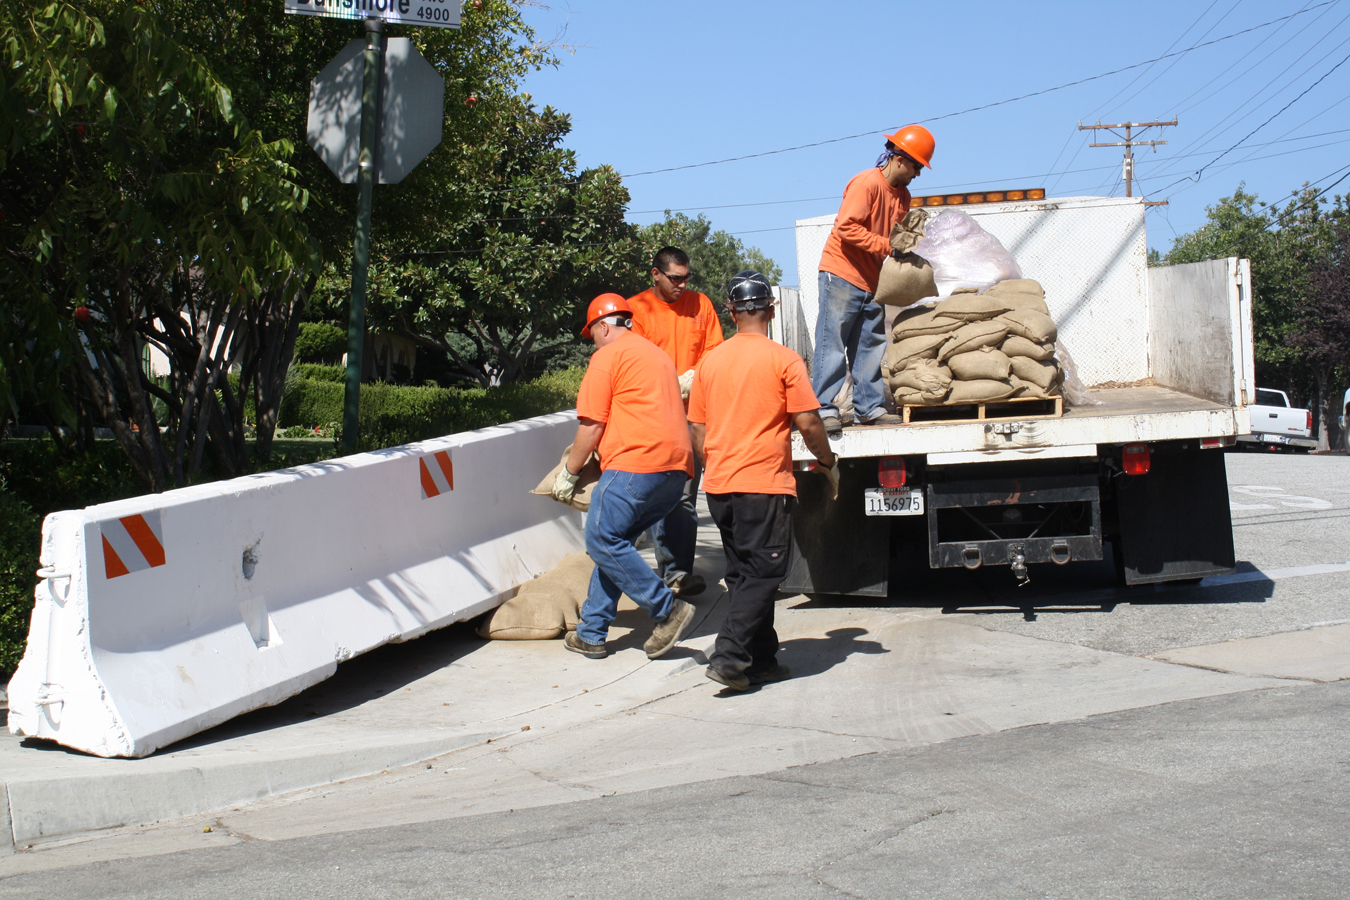 Photo By Mary O'KEEFE Glendale Public Works employees prepared for the worst just before the first post Station Fire rain storm. Workers placed K-rails and sandbags along several foothills  streets including this one on Dunsmore Avenue.